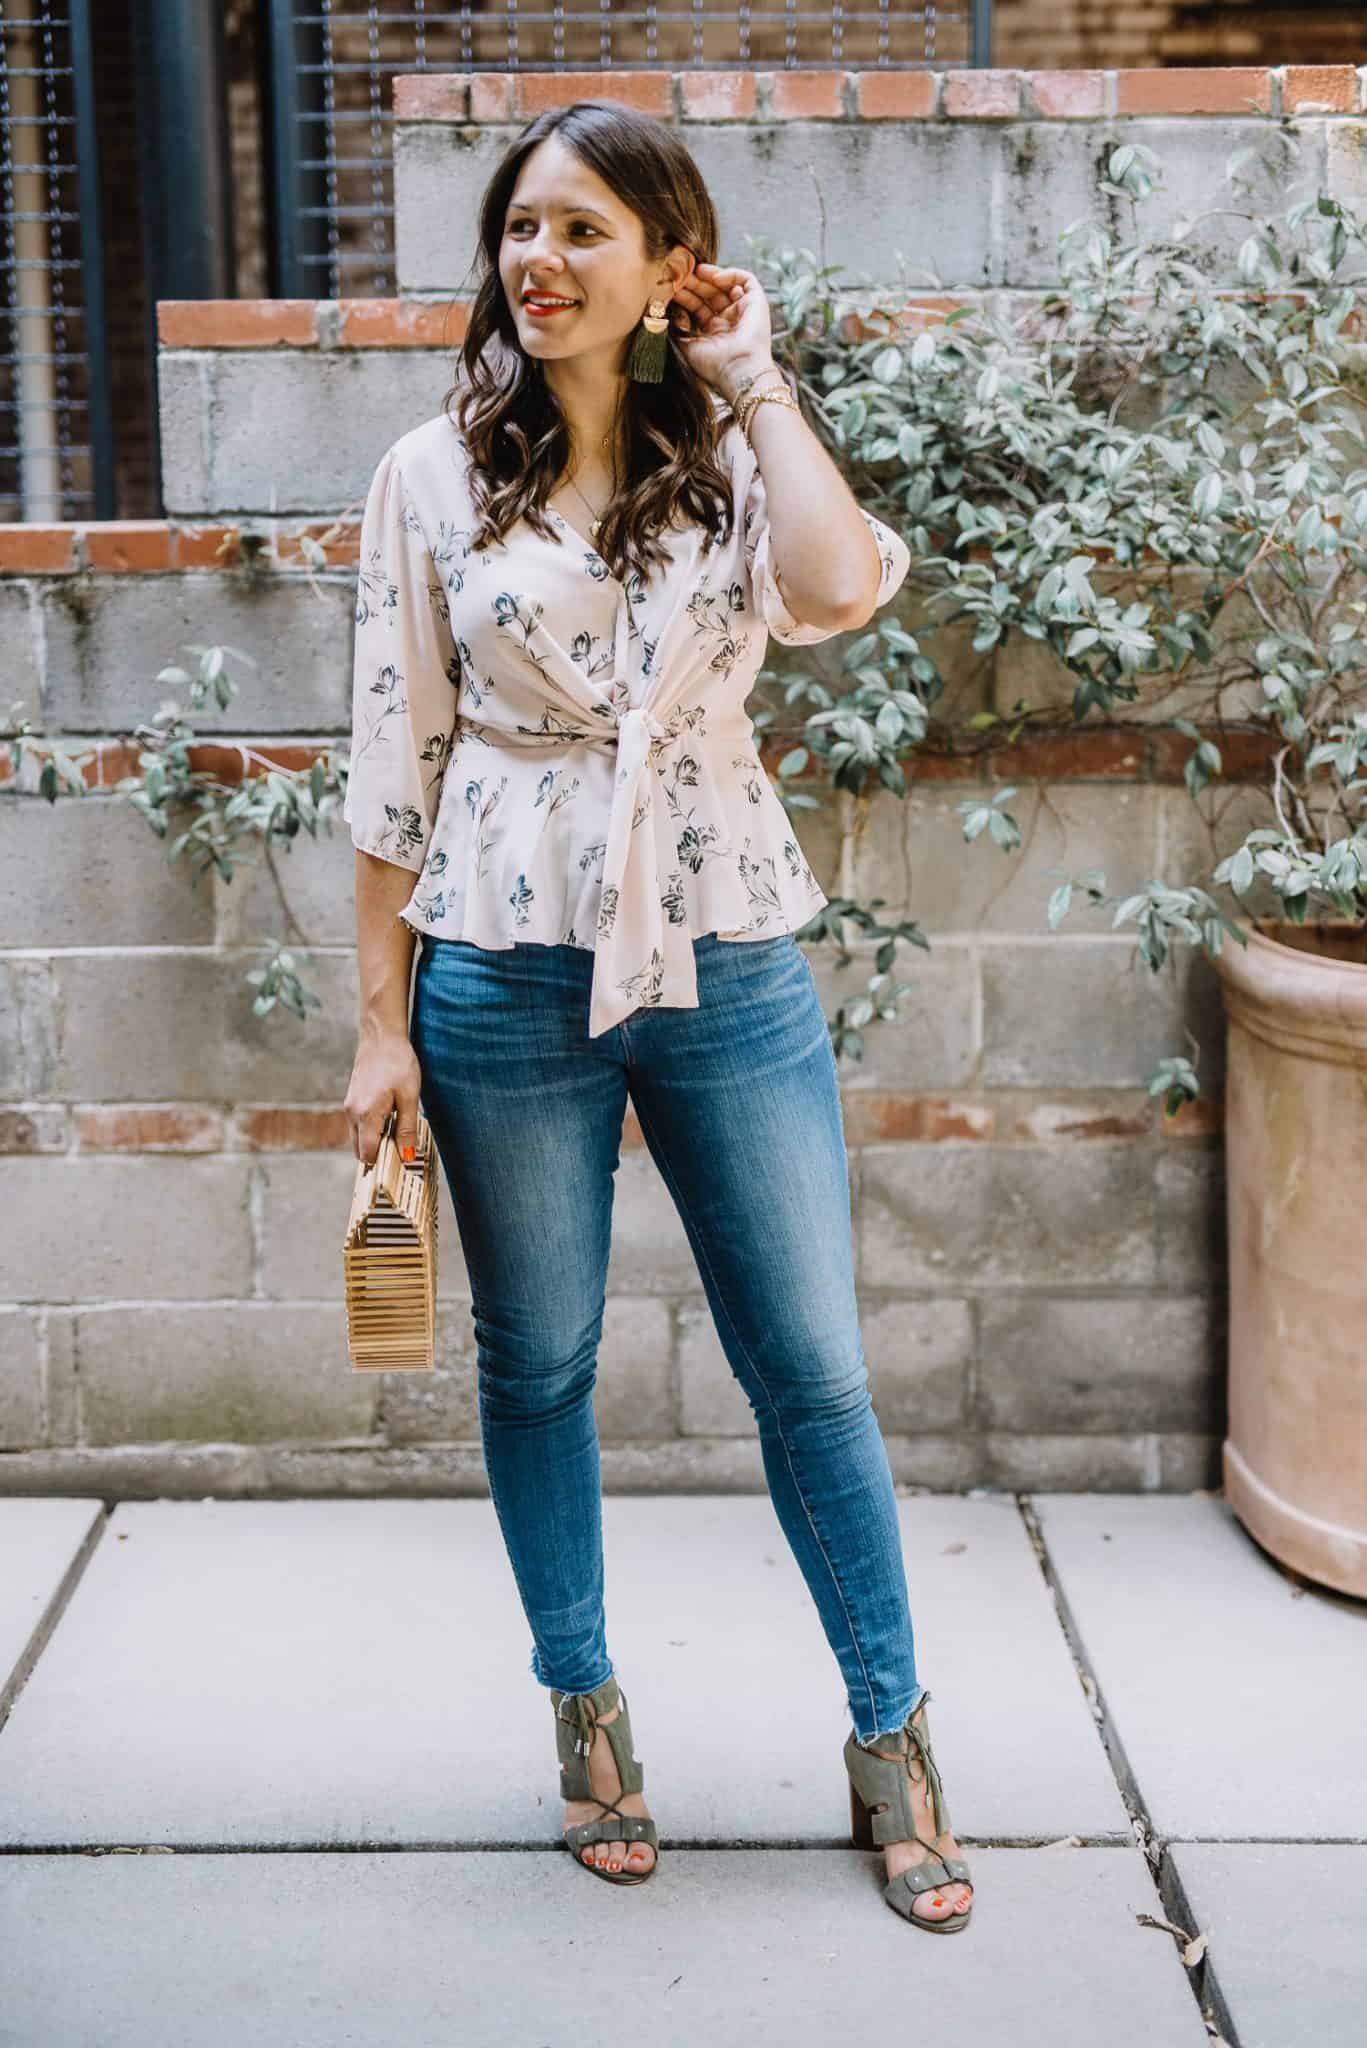 fall outfit ideas from My Style Vita